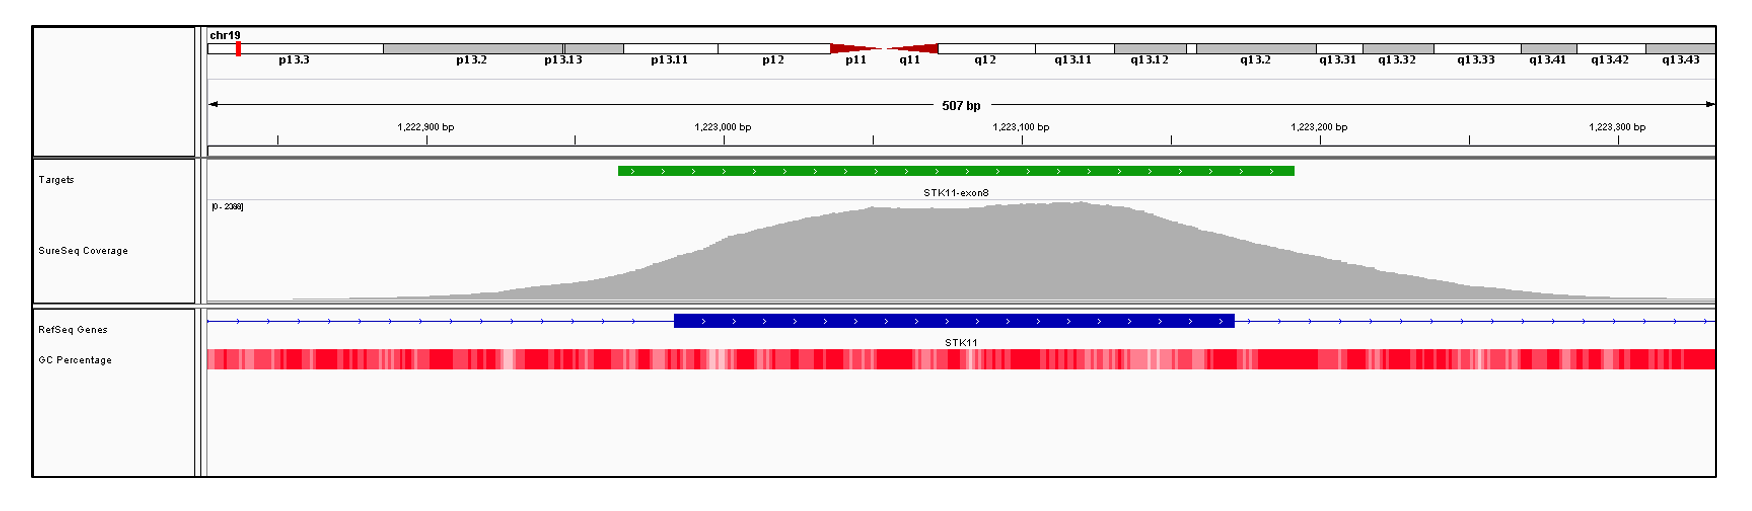 STK11 Exon 8 (hg19 chr19:1222984-1223171). Depth of coverage per base (grey). Targeted region (green). Gene coding region as defined by RefSeq (blue). GC percentage (red). Image